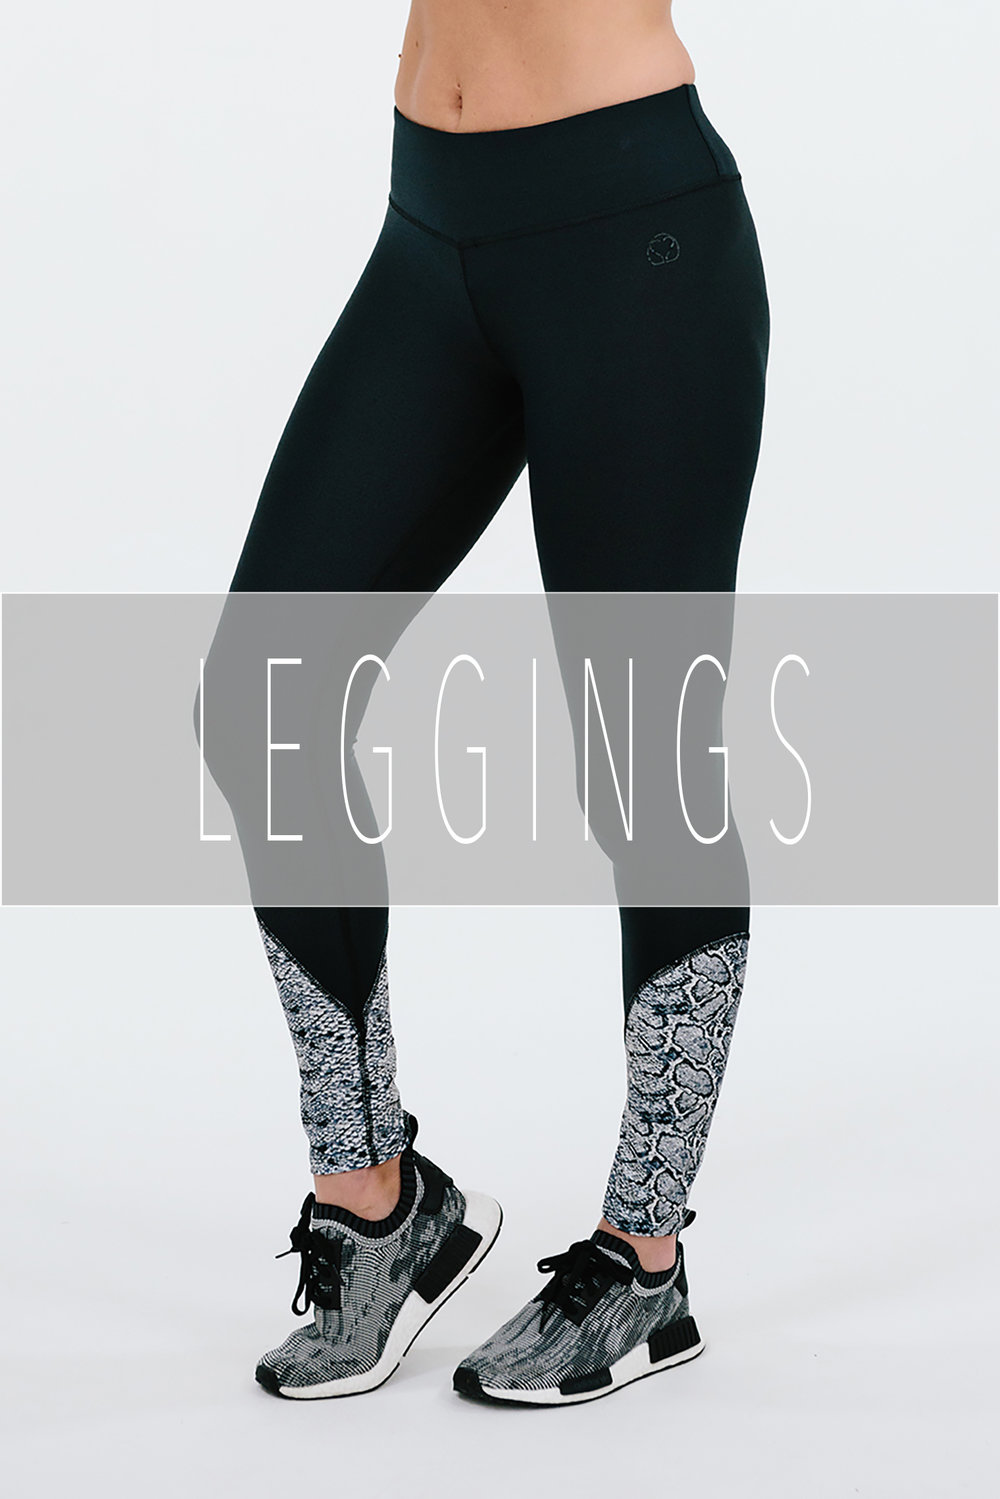 macon_legging_product_section.jpg